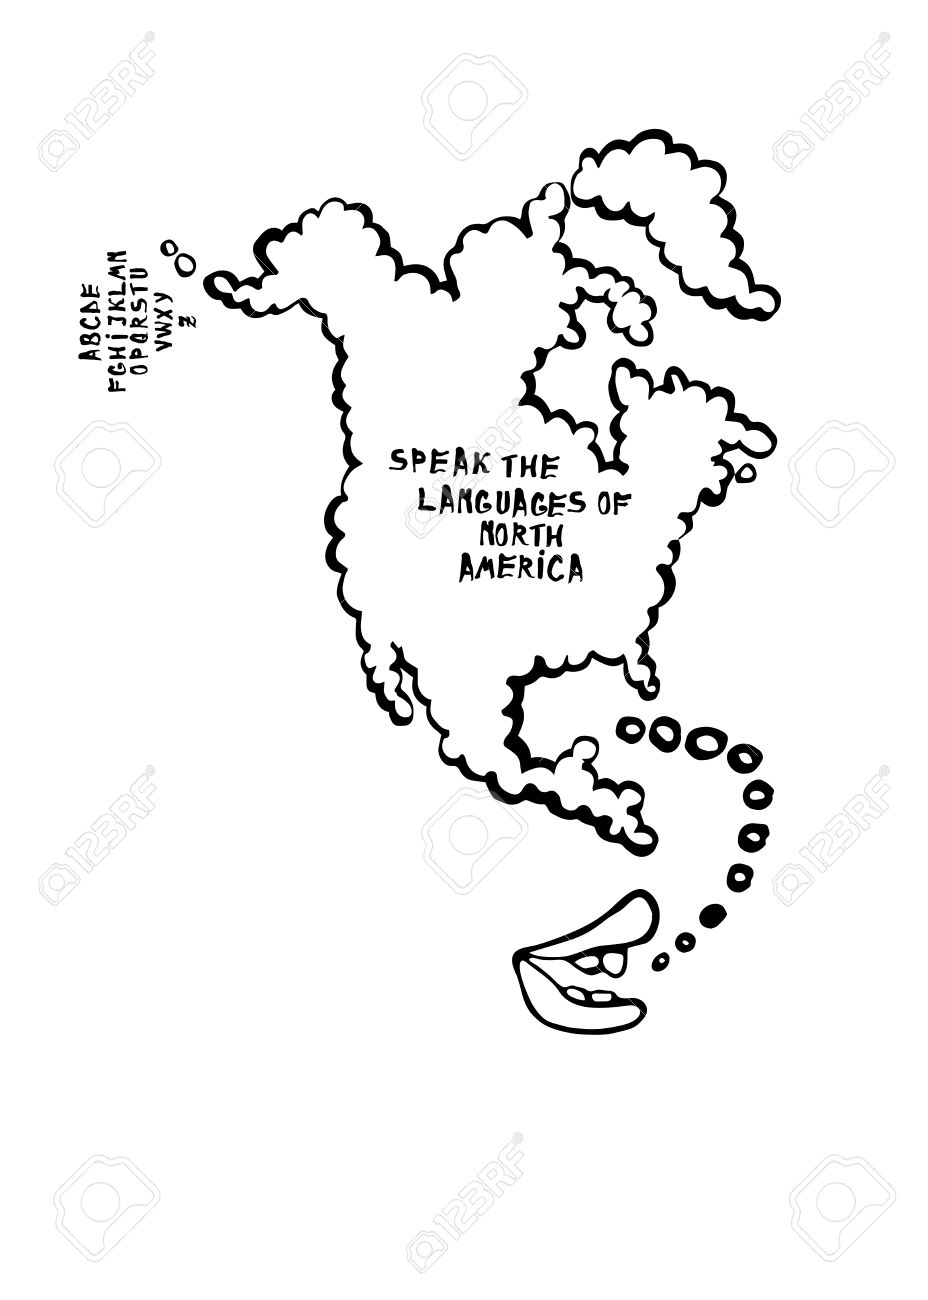 928x1300 Language Learning Map With Mouth Speaking Cartoon, The Map Is